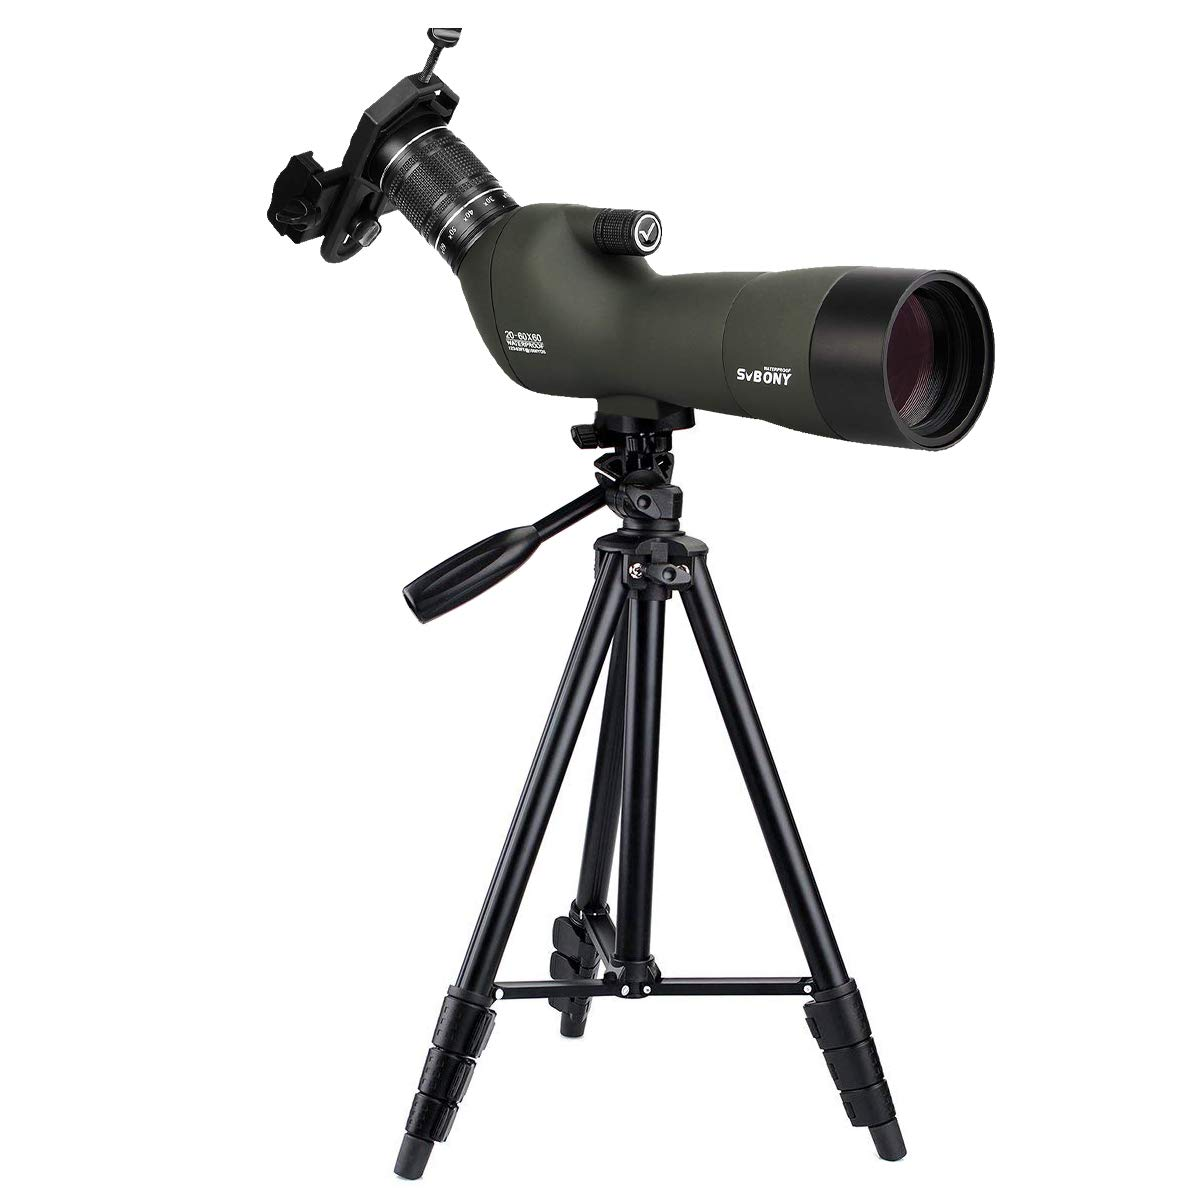 SVBONY SV29 Spotting Scope 20-60x60mm Zoom Spotting Scope Bak4 Prism IP68 Waterproof for Bird Watching Shooting Camping with Tripod (3-Sections Tripod) by SVBONY